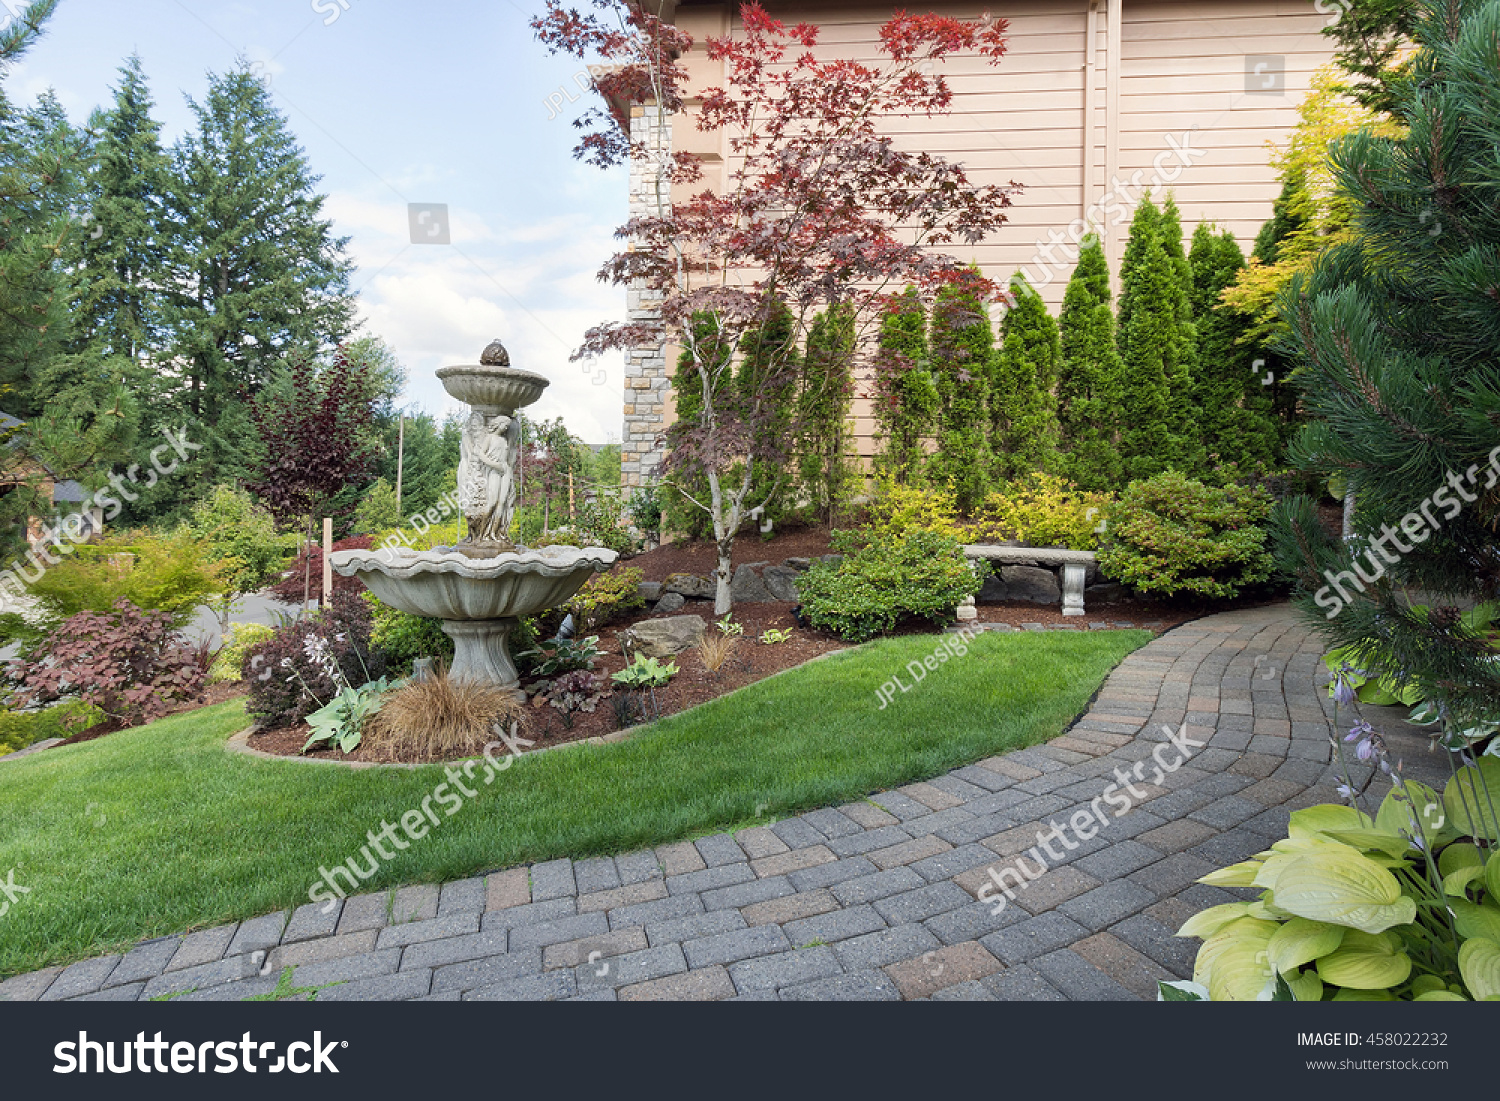 House Manicured Frontyard Garden With Water Fountain Stone Bench Green Lawn  Plants Trees Shrubs And Brick